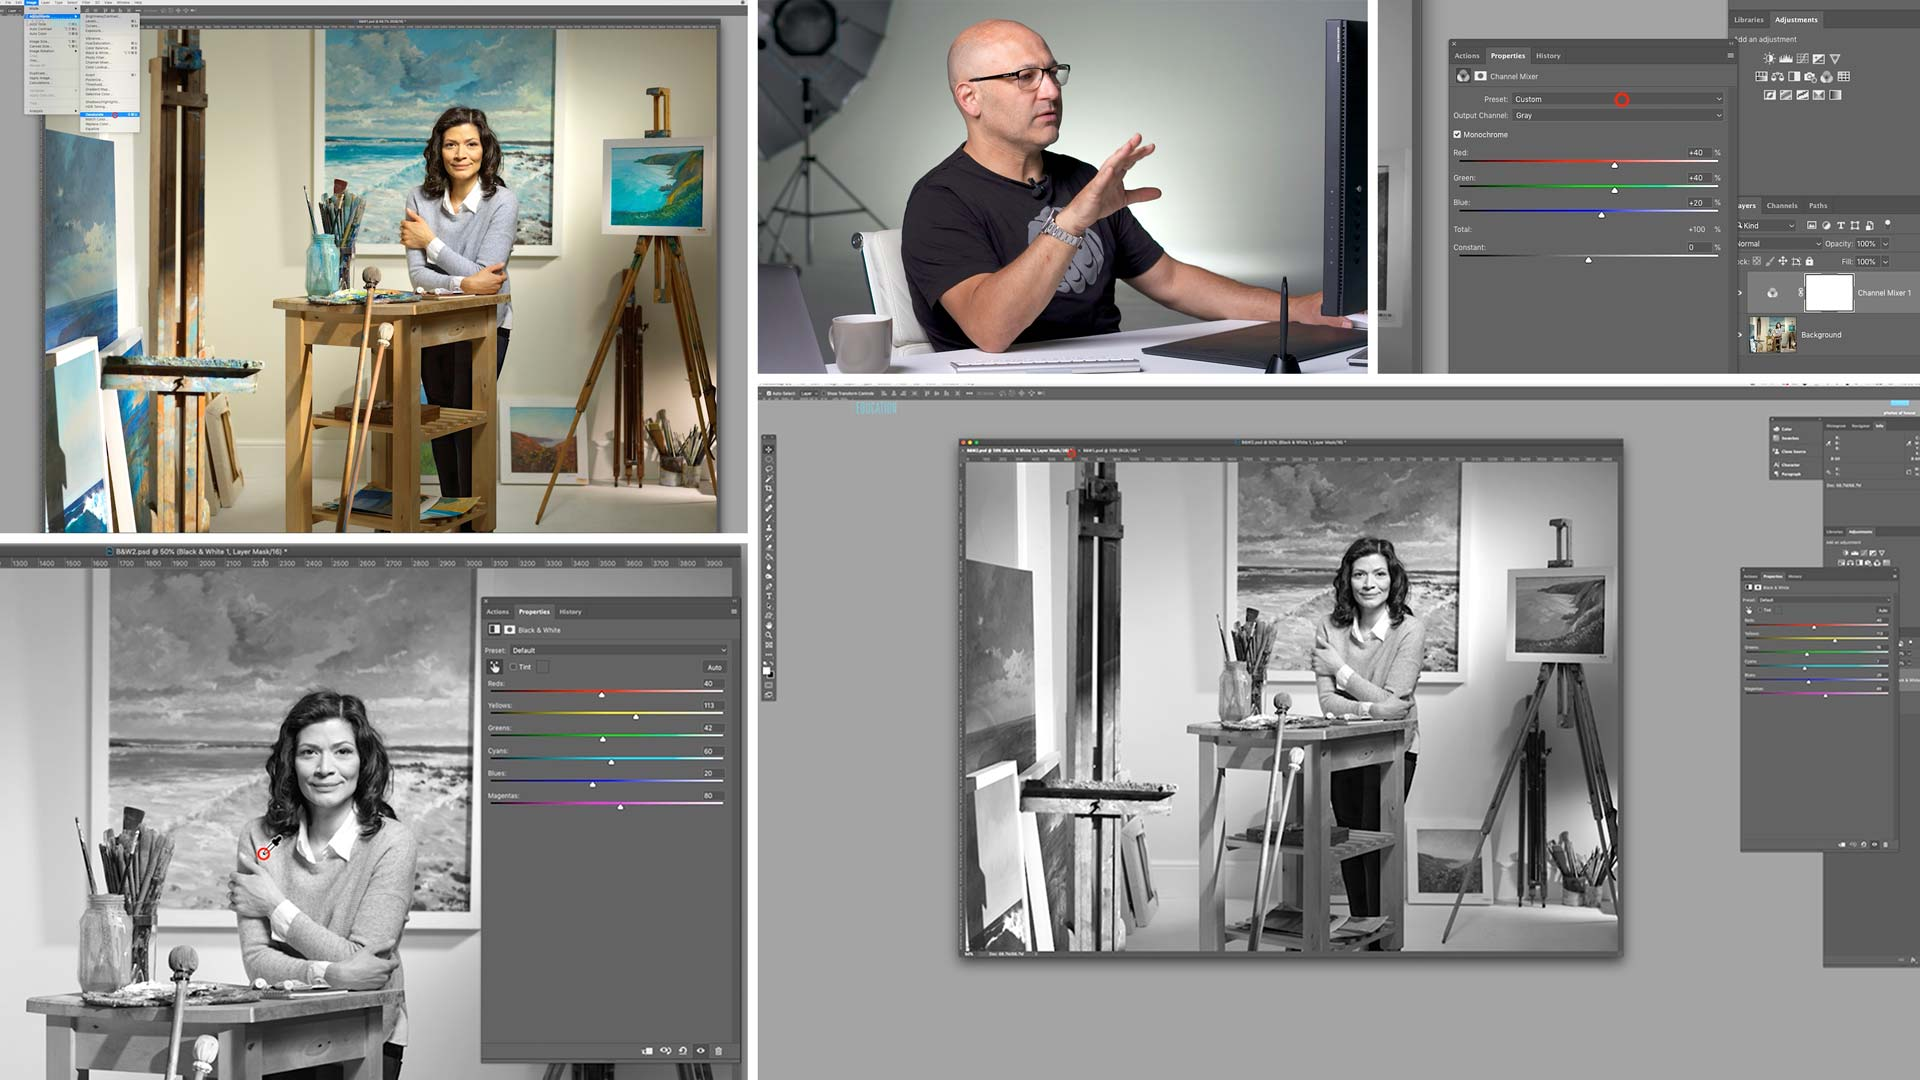 Converting images to black and white